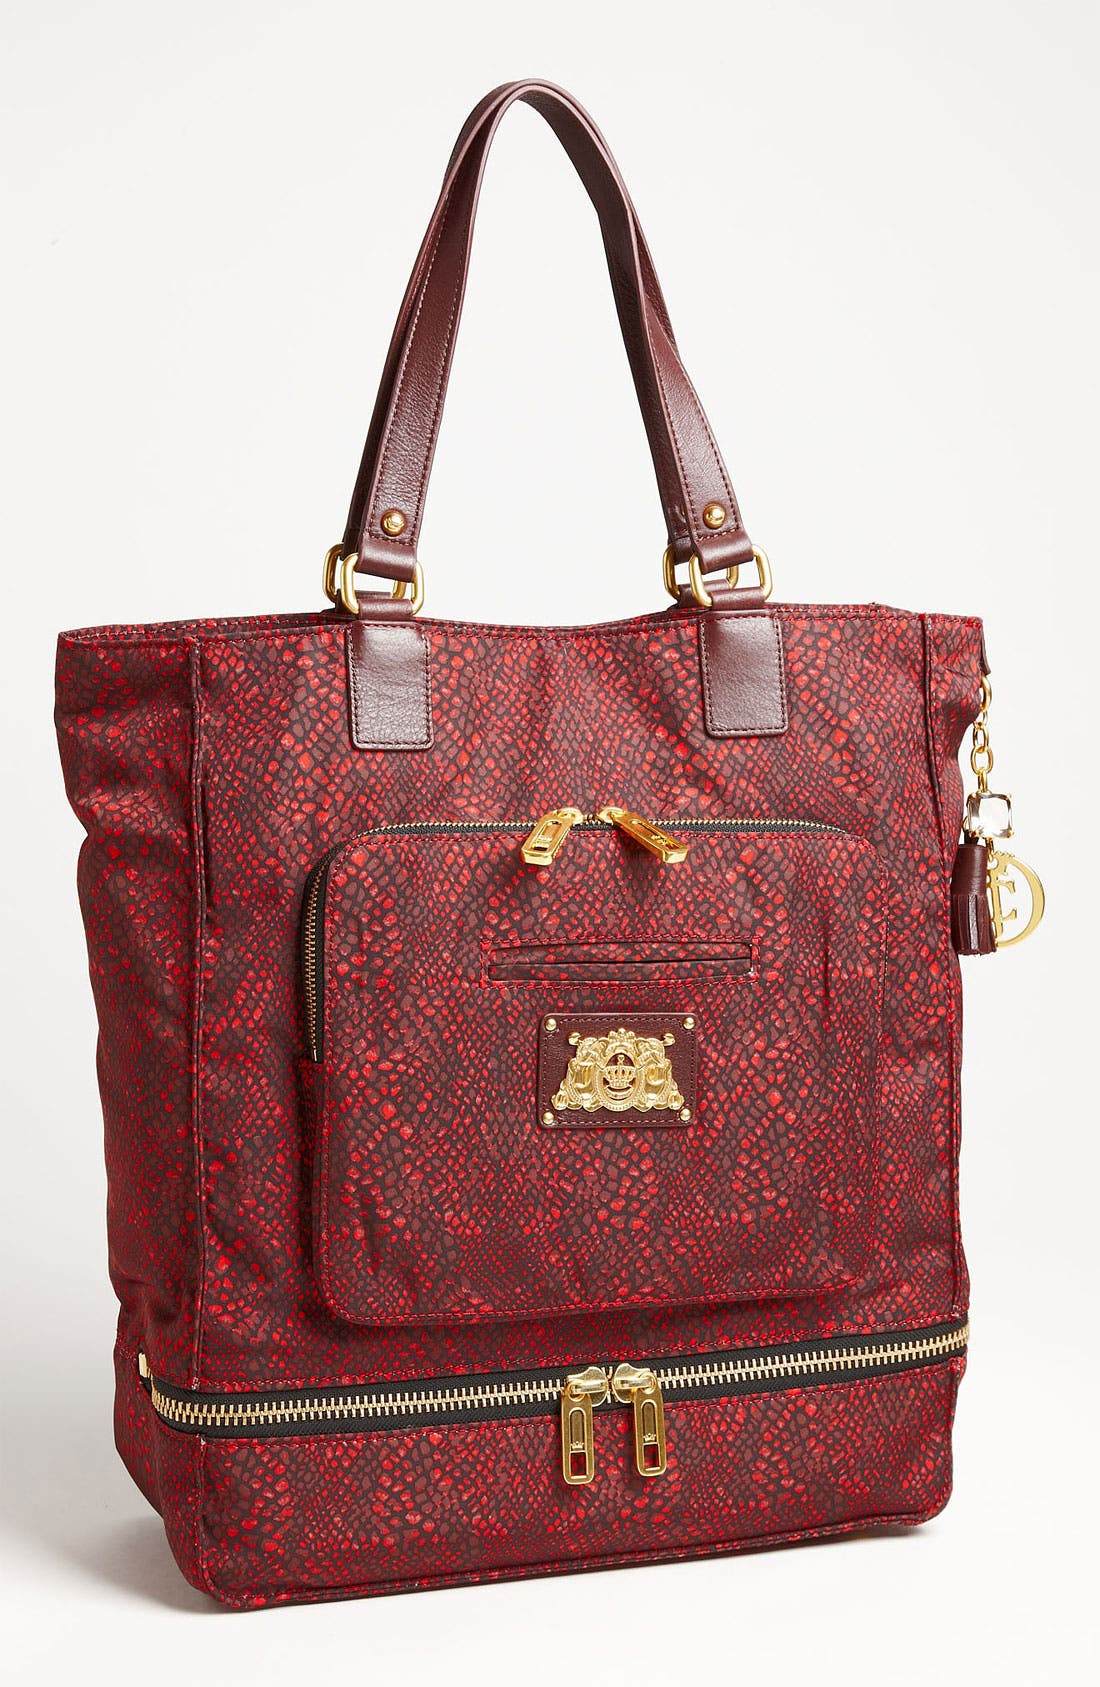 Alternate Image 1 Selected - Juicy Couture 'All Day All Night' Oversized Tote